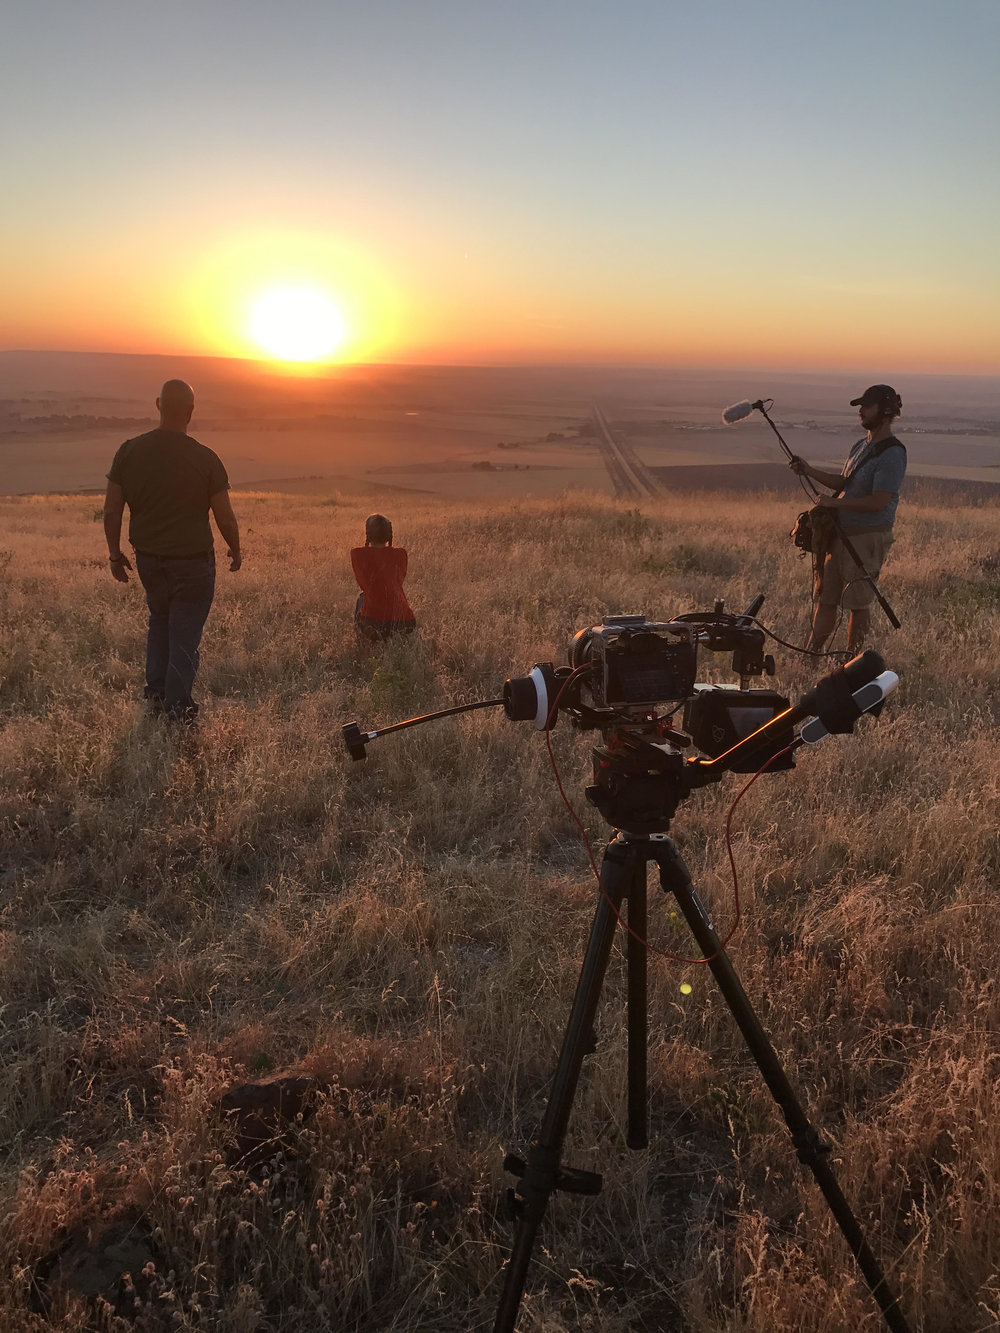 Filming a dramatic scene during sunset atop a mountain overlooking the Umatilla Reservation in Pendleton, Oregon.